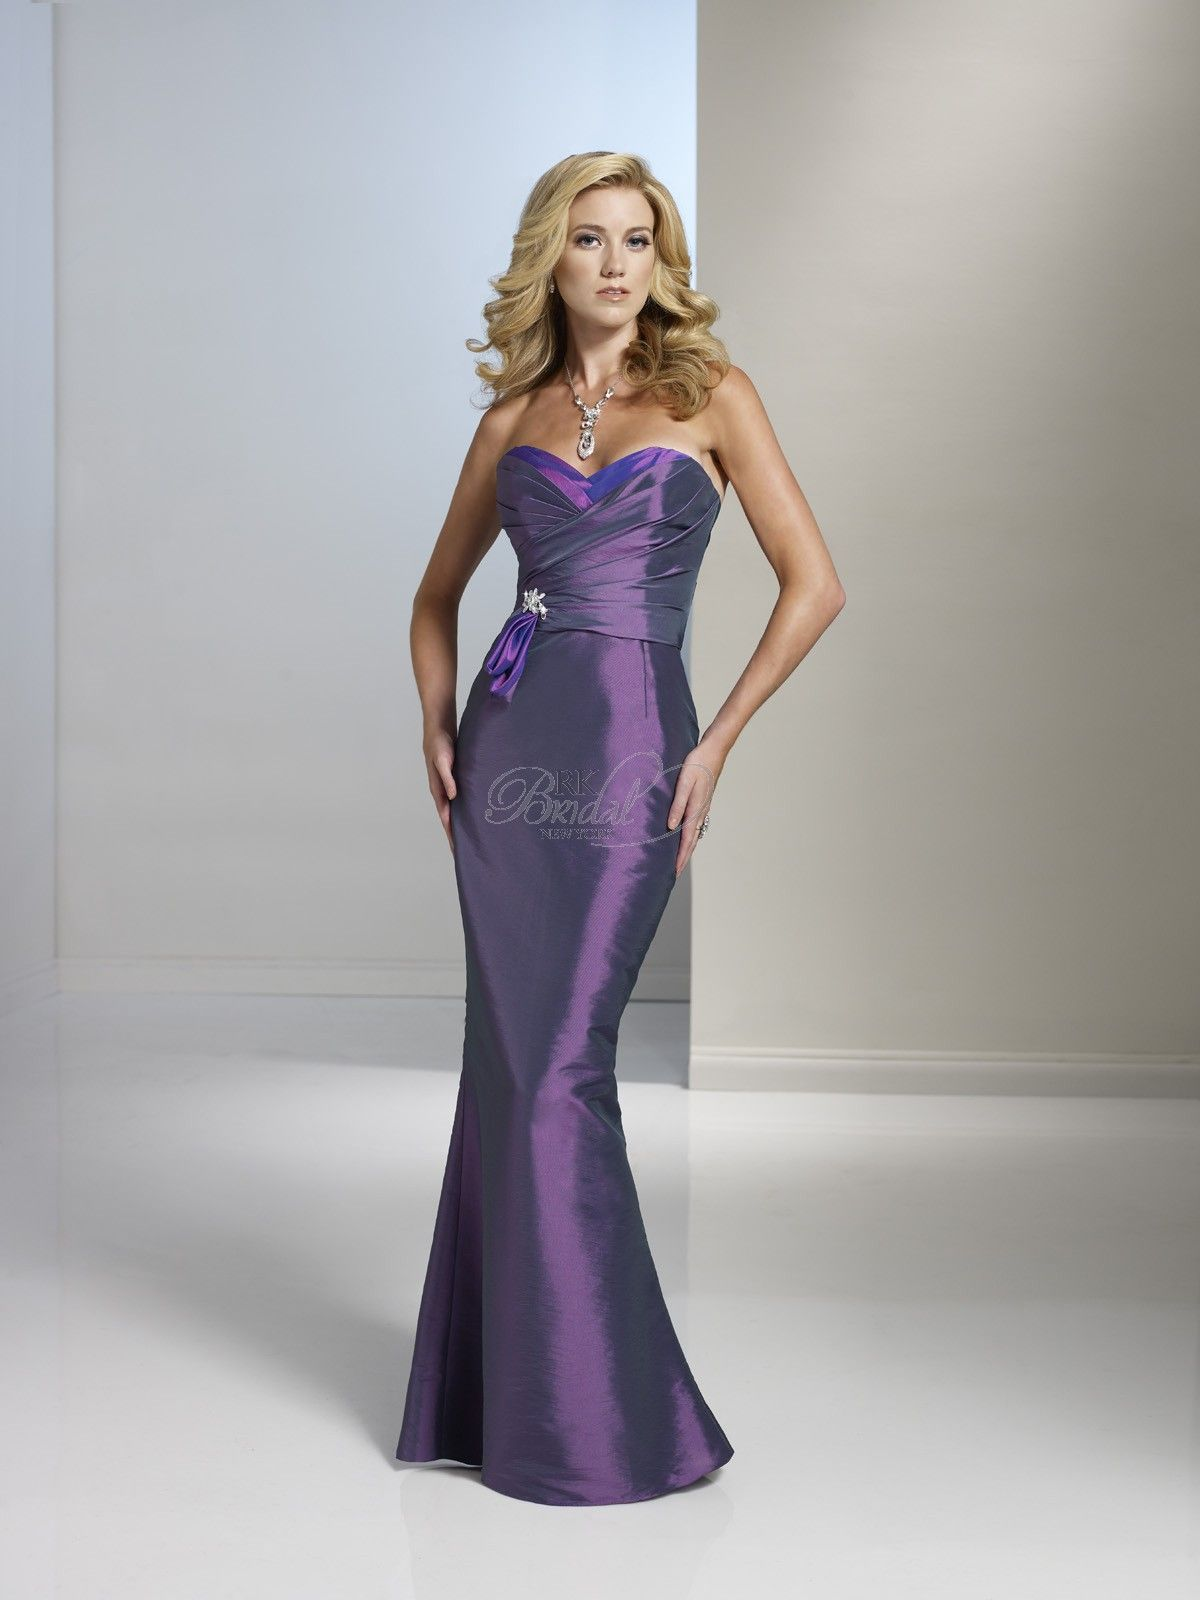 Lilac dress for wedding  Regal purple bridesmaid dress from RK Bridal NYC  vestidos de